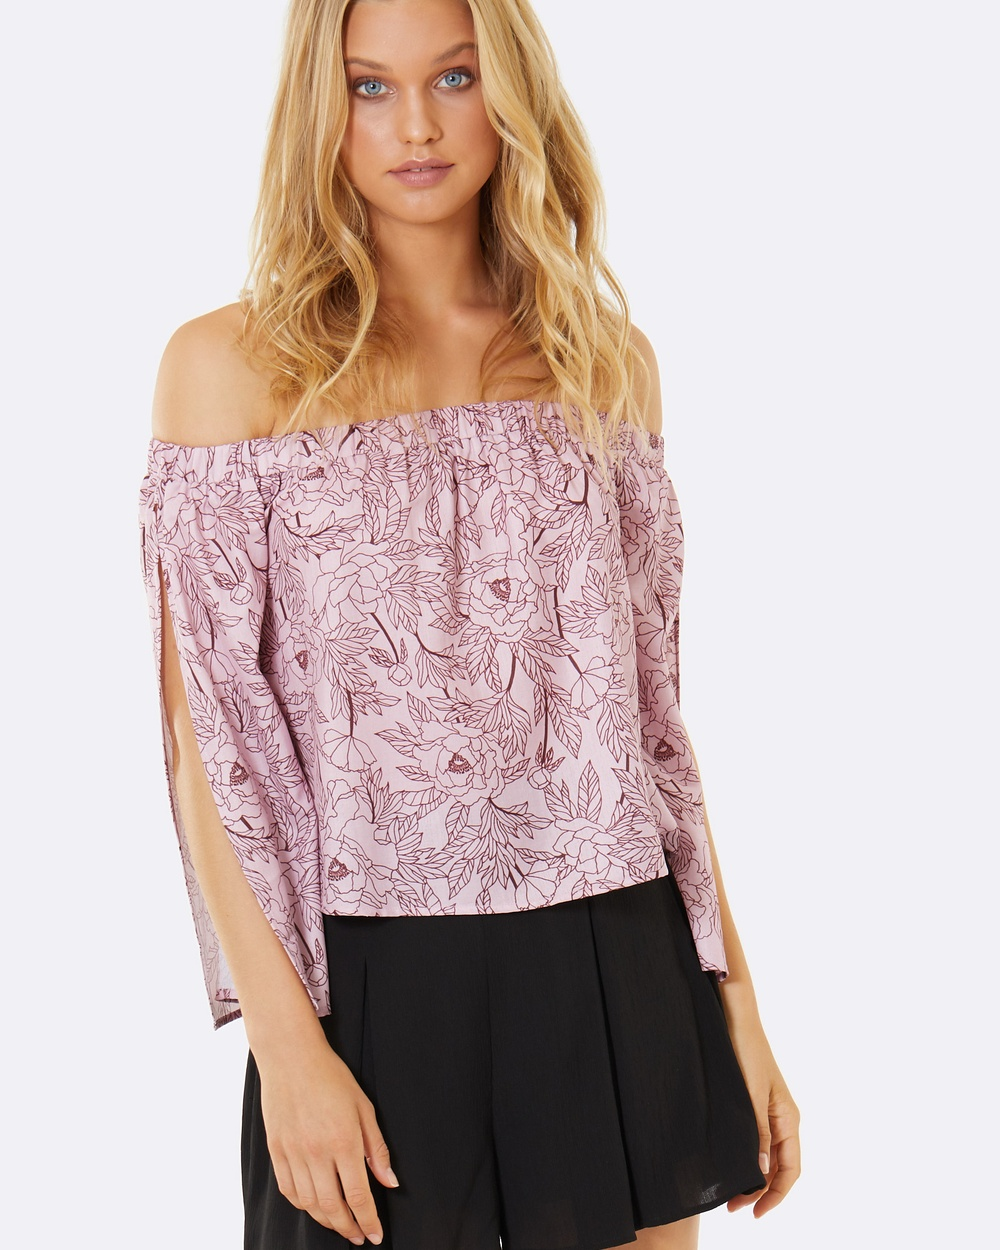 Calli Lulu Top Tops Blush Blooms Lulu Top